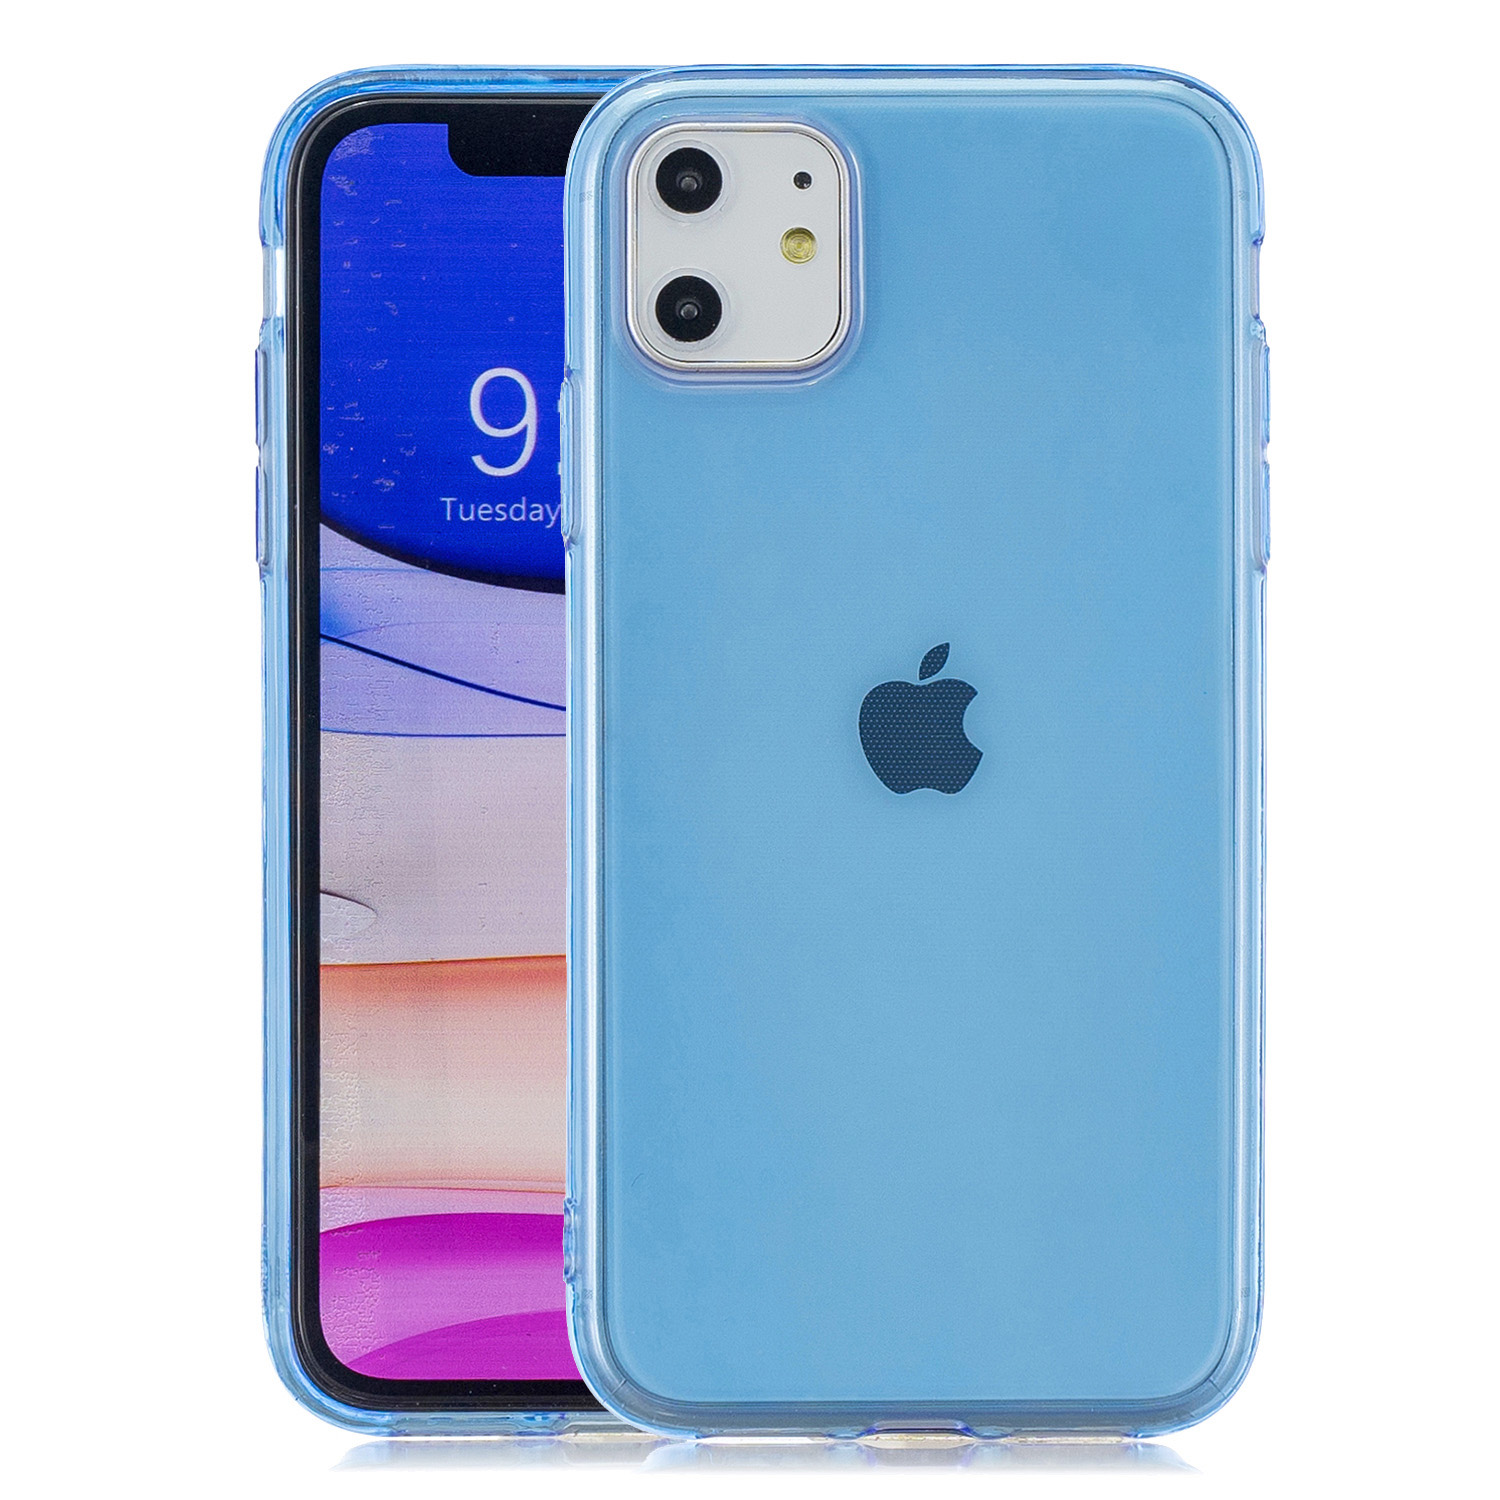 for iPhone 11 / 11 Pro / 11 Pro Max Clear Colorful TPU Back Cover Cellphone Case Shell Light blue